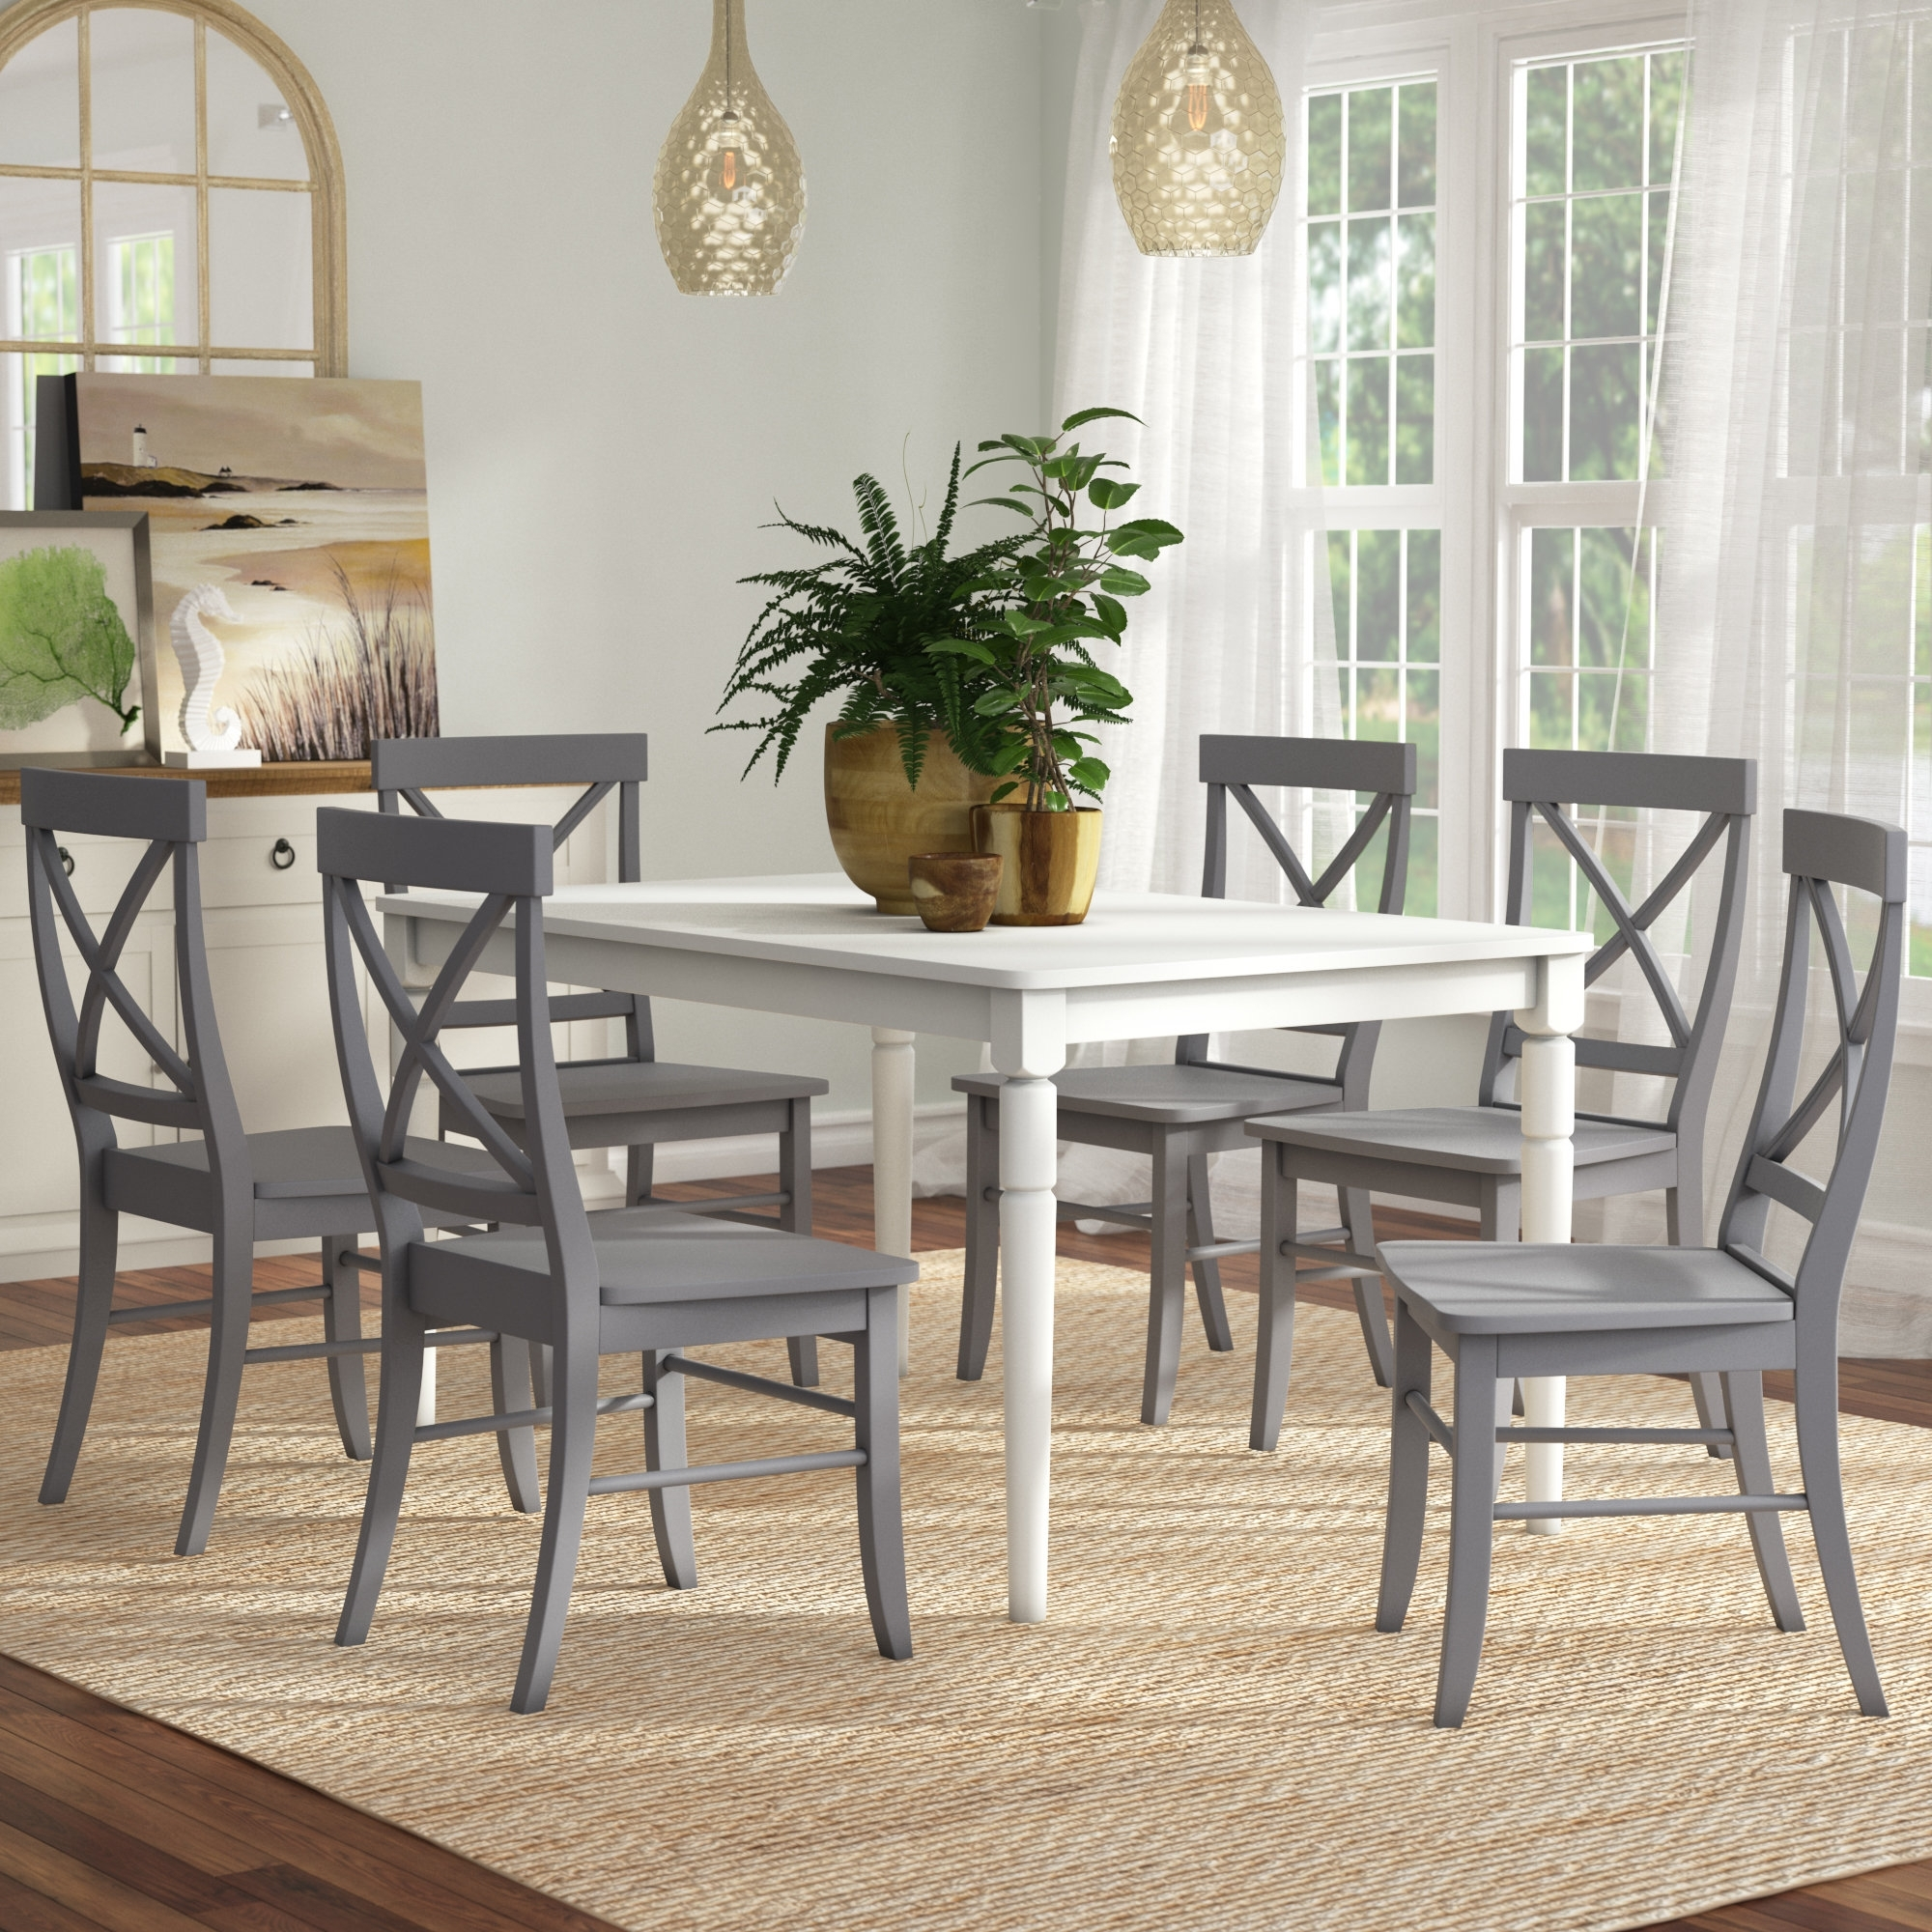 Beachcrest Home Brookwood 7 Piece Dining Set & Reviews | Wayfair With Regard To Newest Candice Ii 7 Piece Extension Rectangle Dining Sets (View 12 of 20)